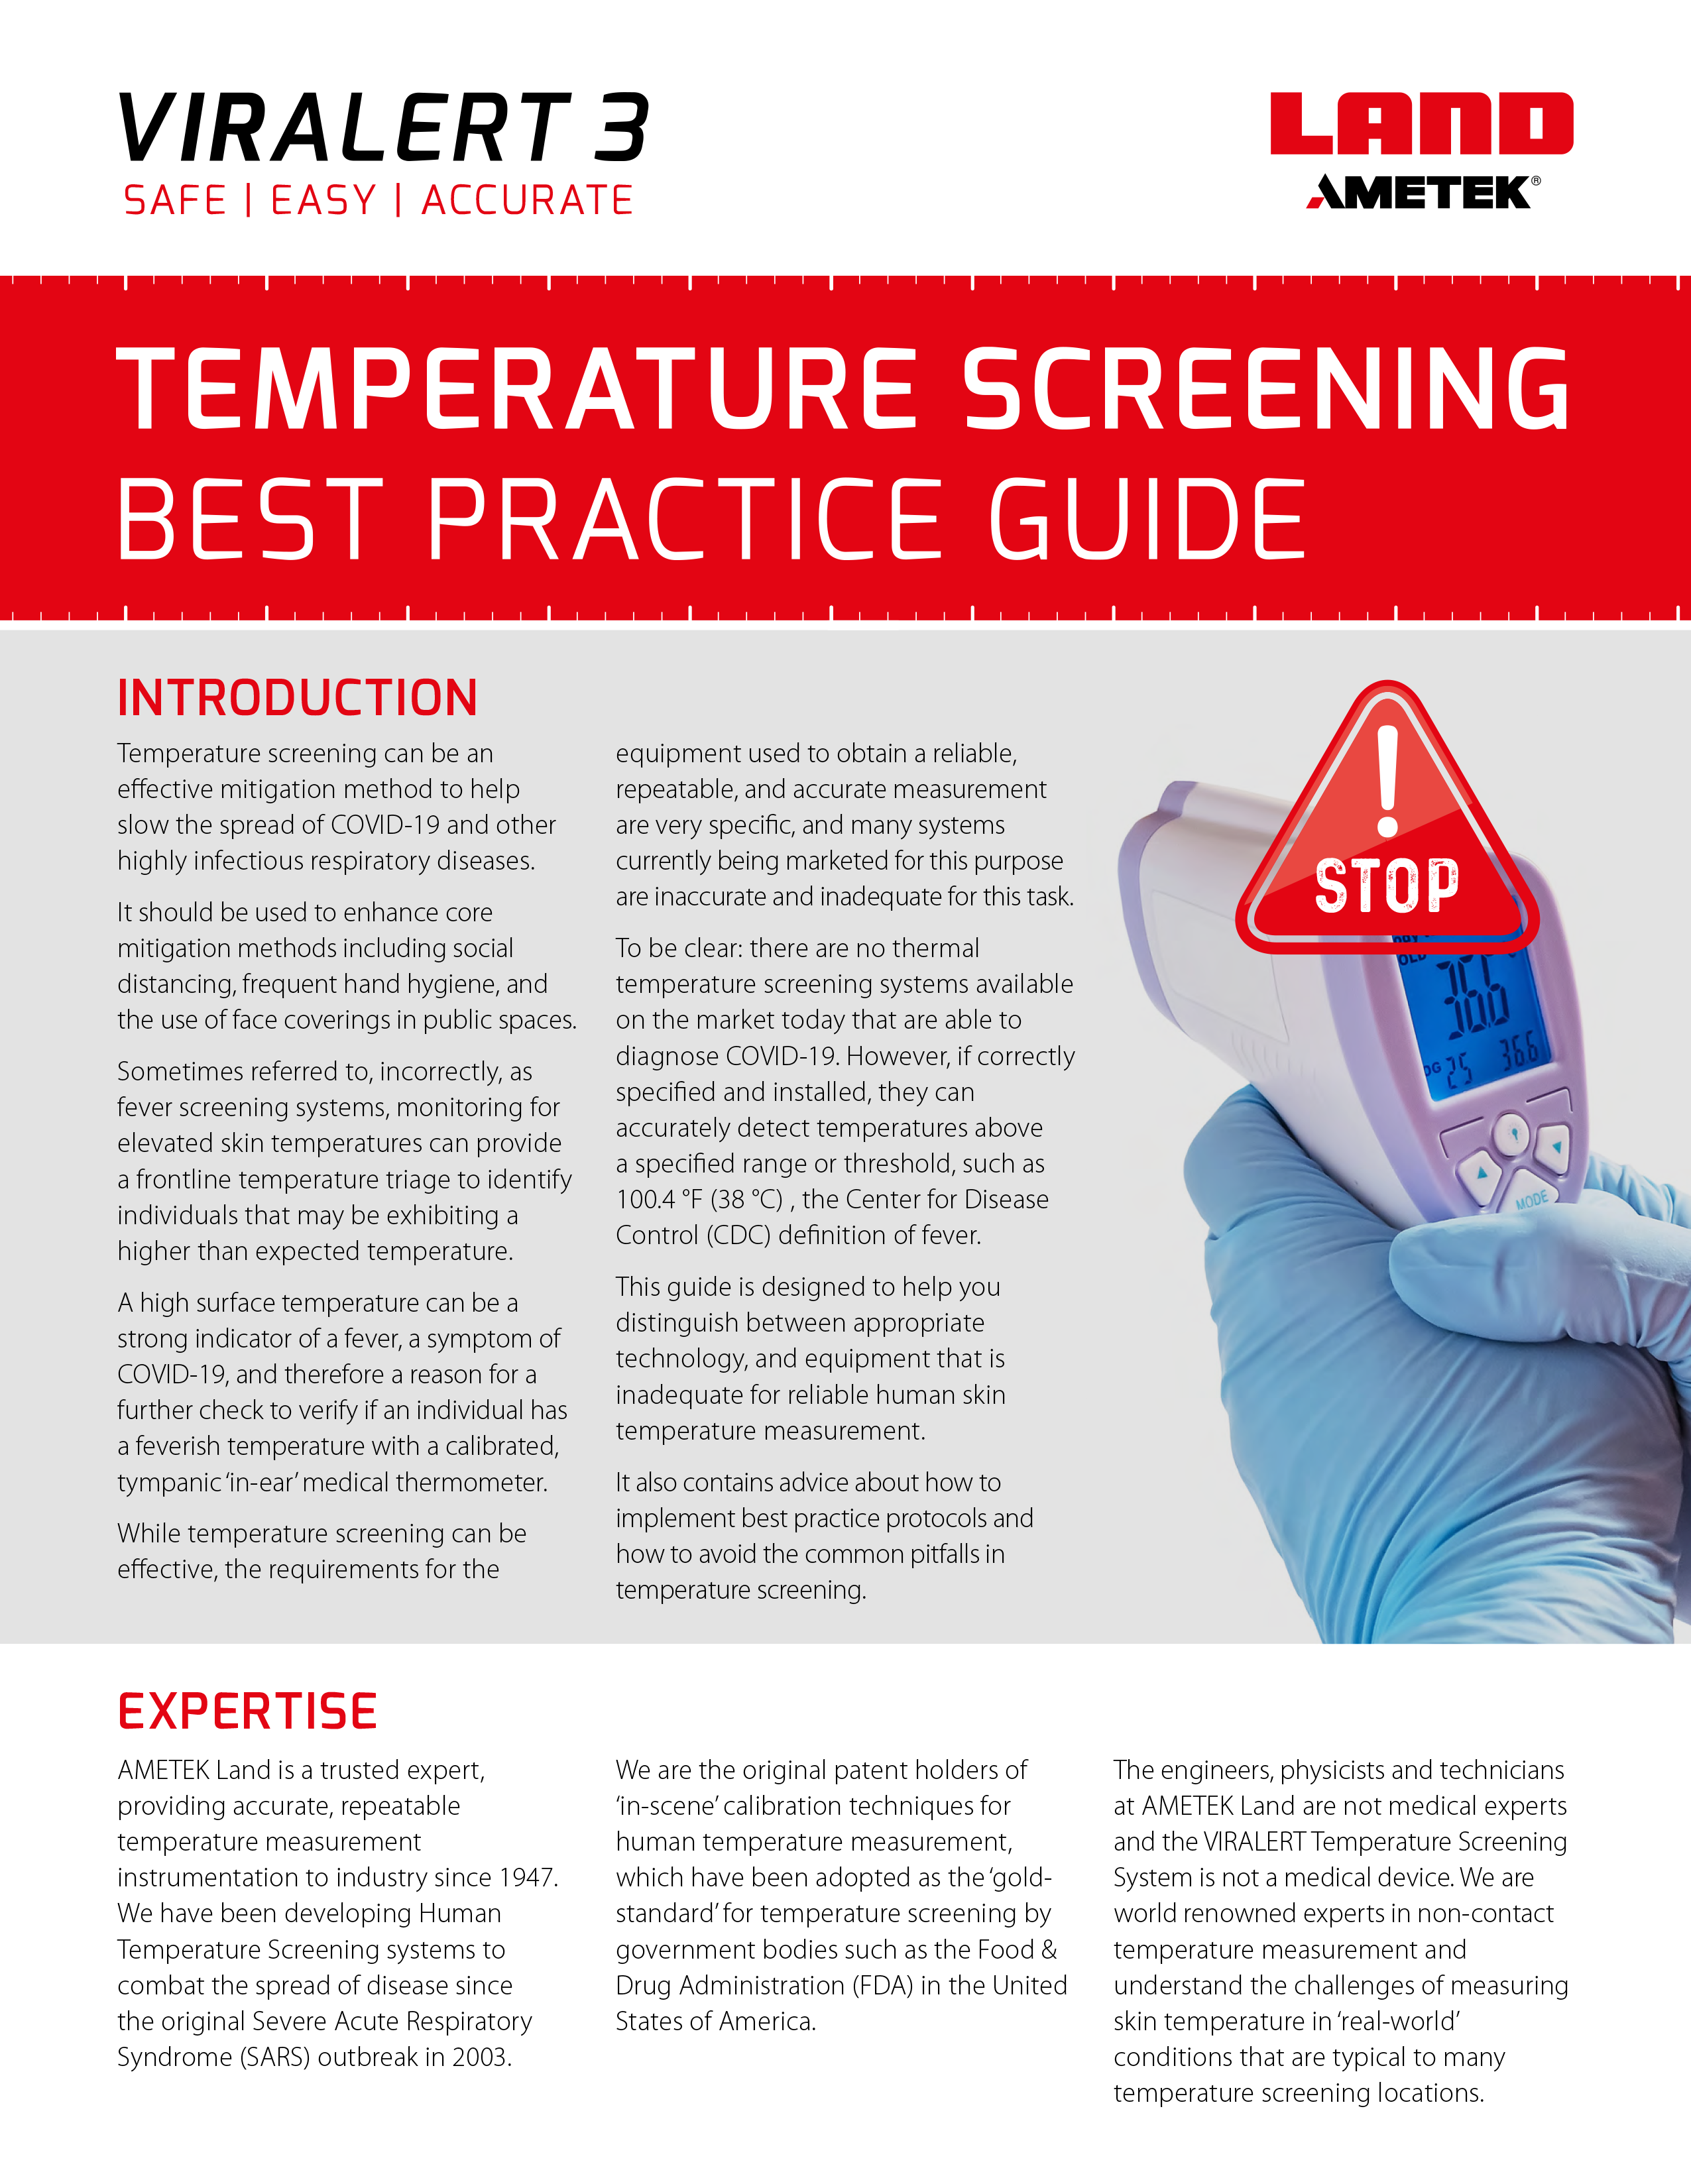 VIRALERT Temperature Screening Best Practice Guide